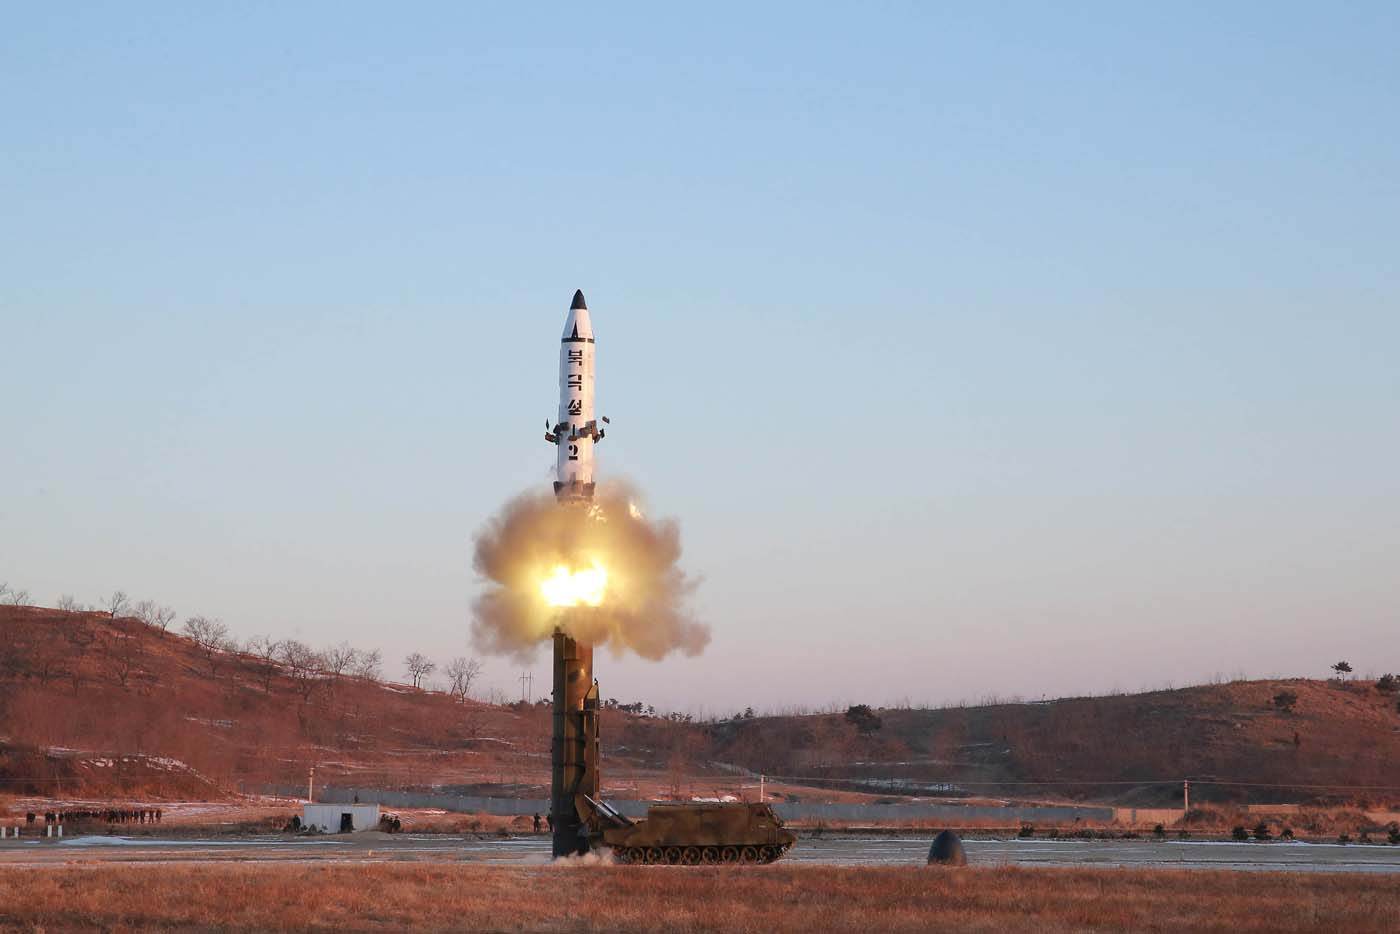 A view of the test-fire of Pukguksong-2 guided by North Korean leader Kim Jong Un on the spot, in this undated photo released by North Korea's Korean Central News Agency (KCNA) in Pyongyang February 13, 2017. KCNA/Handout via Reuters ATTENTION EDITORS - THIS PICTURE WAS PROVIDED BY A THIRD PARTY. REUTERS IS UNABLE TO INDEPENDENTLY VERIFY THE AUTHENTICITY, CONTENT, LOCATION OR DATE OF THIS IMAGE. FOR EDITORIAL USE ONLY. NO THIRD PARTY SALES. SOUTH KOREA OUT.  THIS PICTURE IS DISTRIBUTED EXACTLY AS RECEIVED BY REUTERS, AS A SERVICE TO CLIENTS.  TPX IMAGES OF THE DAY